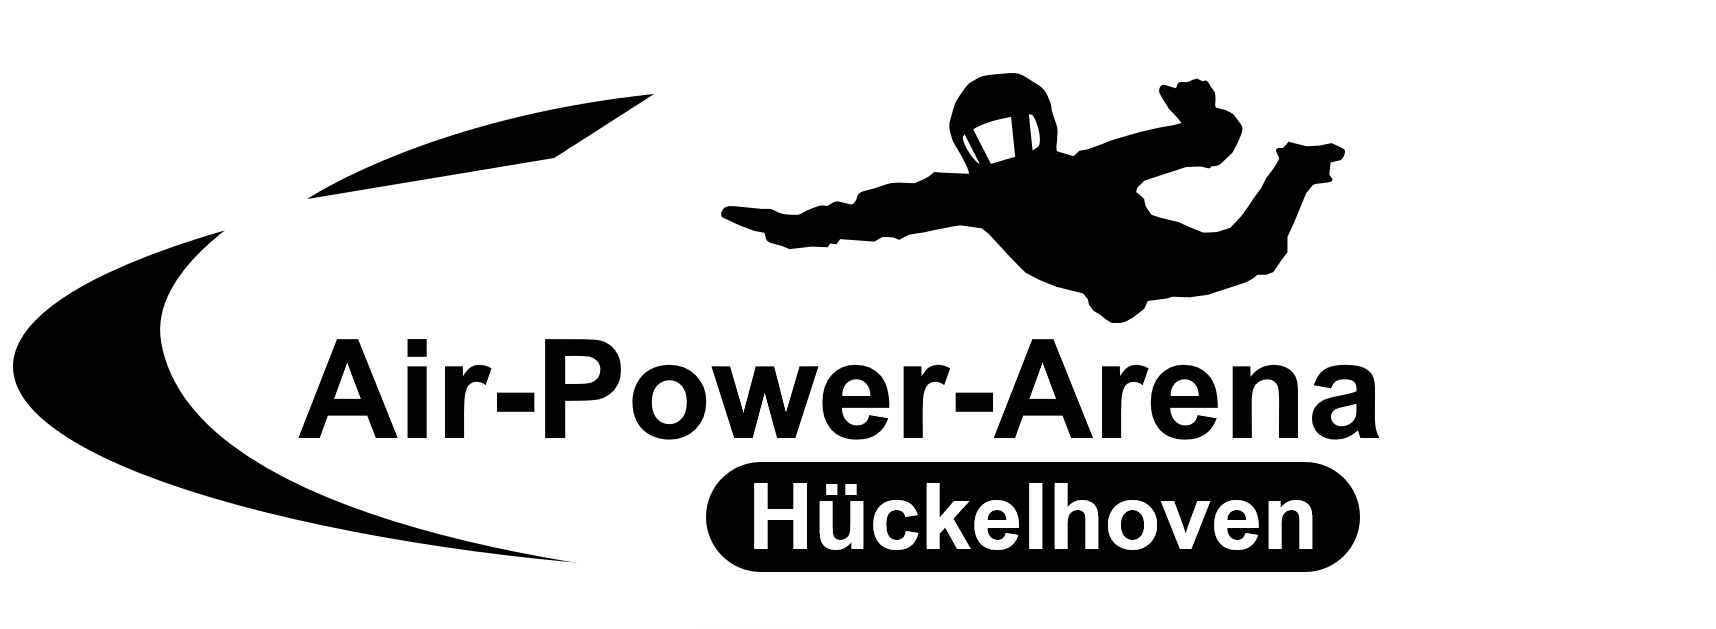 cropped-Logo-Air-Power-Arena-Hückelhoven-1.png